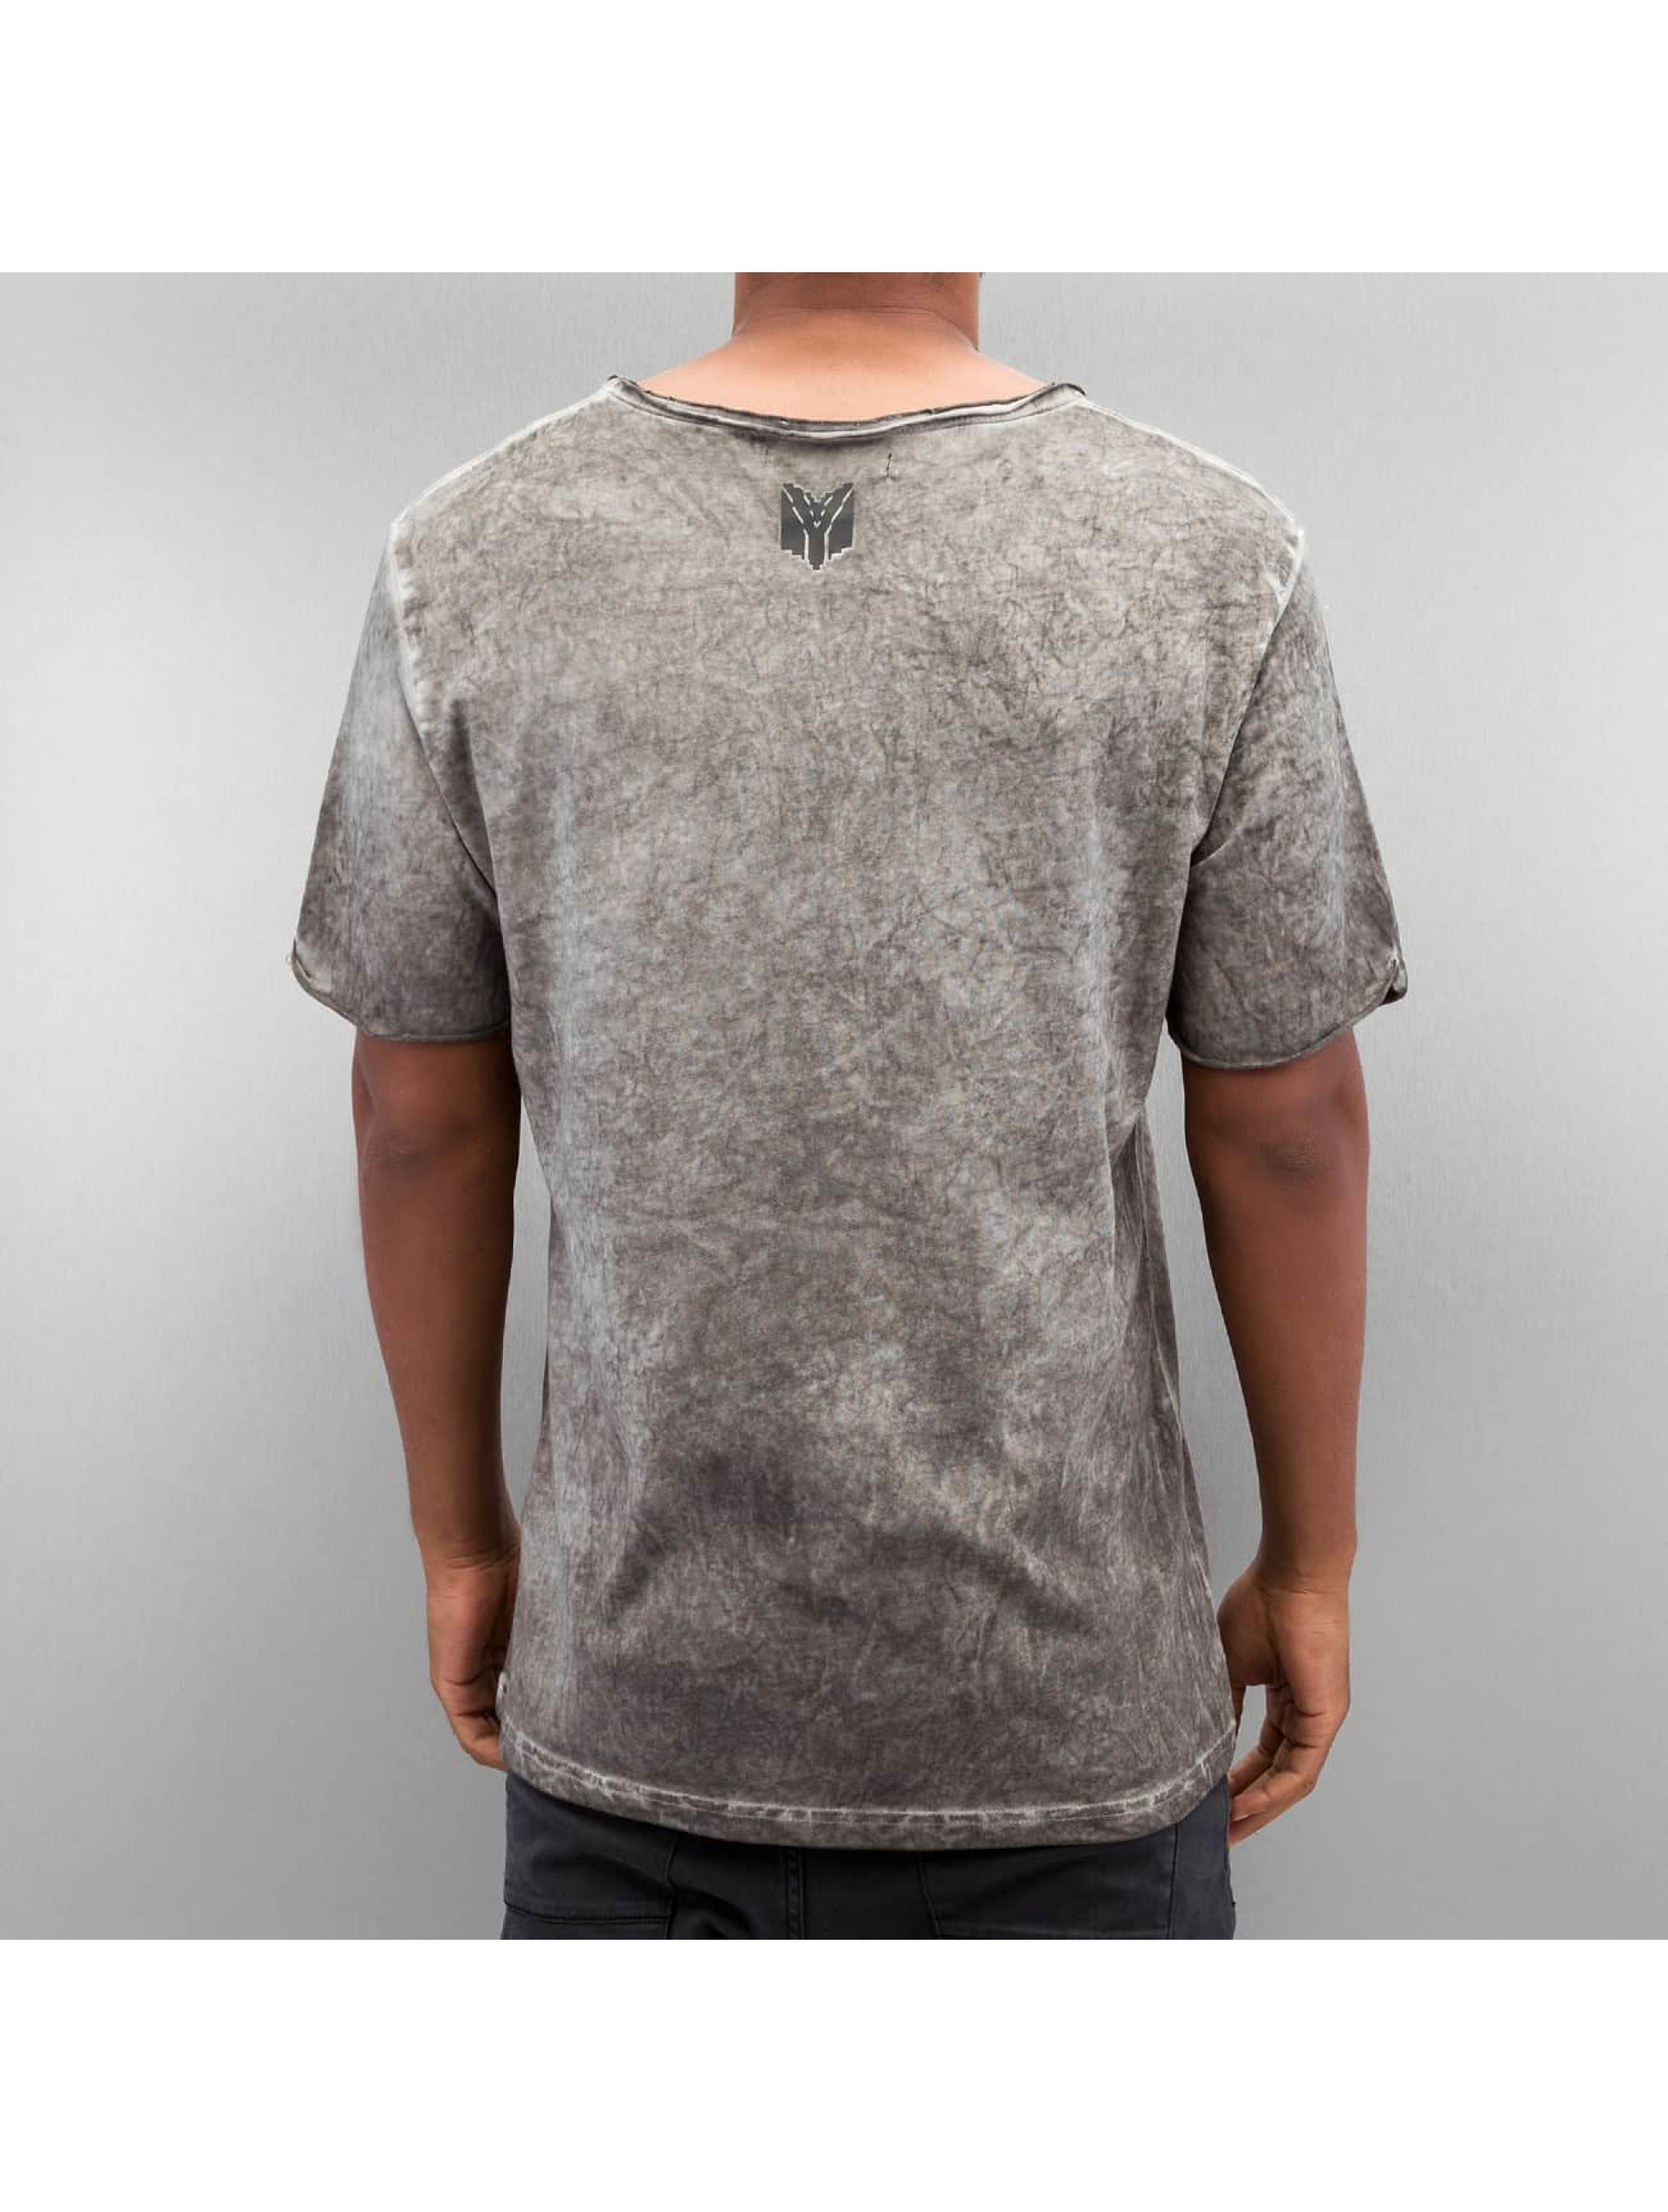 Yezz T-Shirt Washed gray